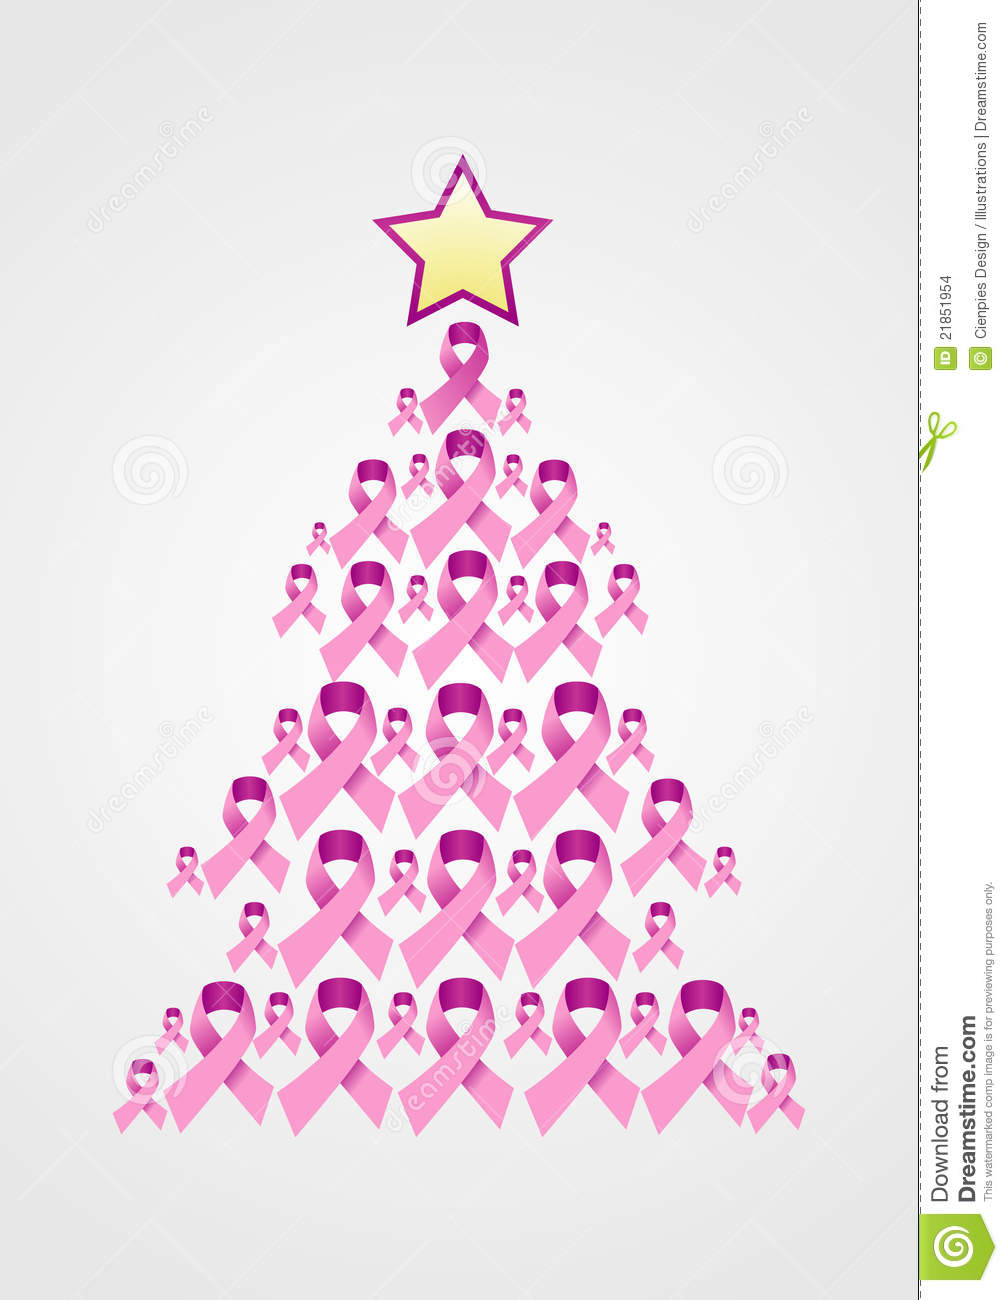 Breast cancer ornament - Breast Cancer Ribbon Christmas Tree